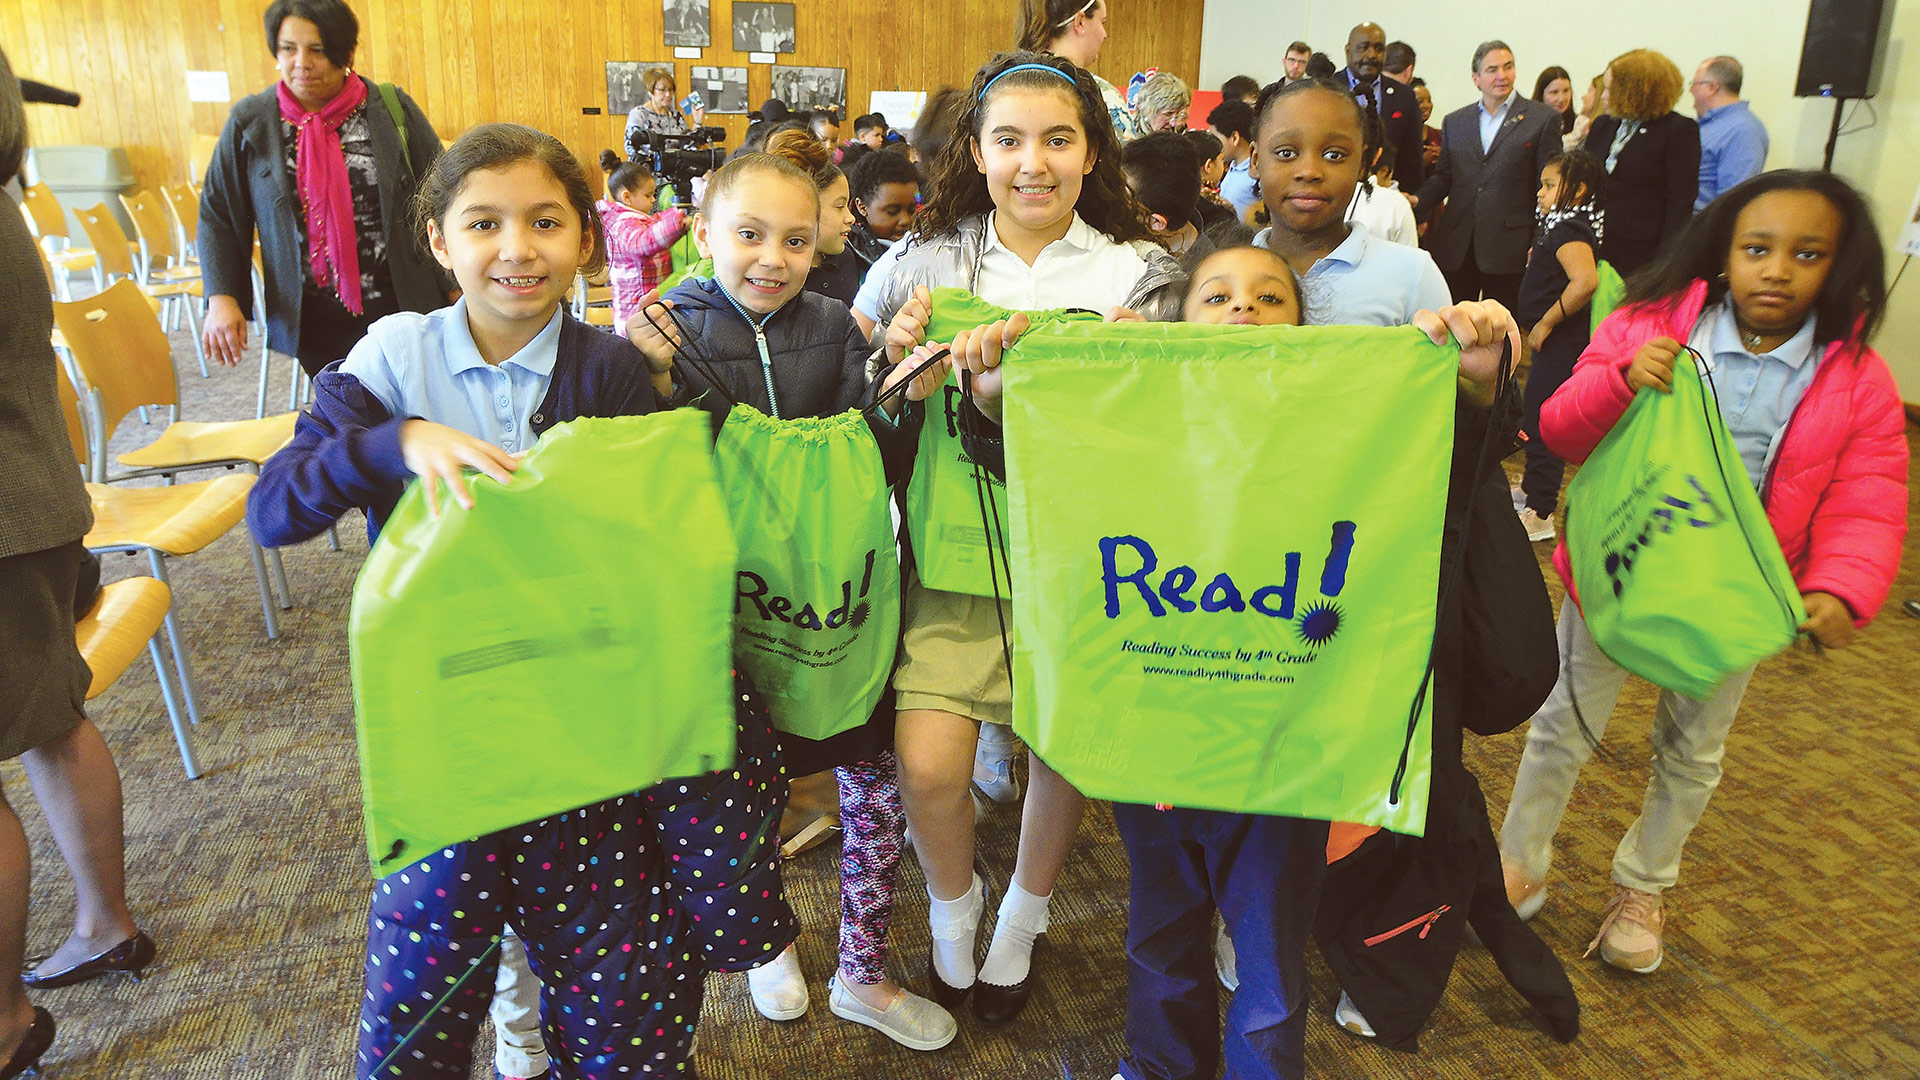 Students from DeBerry pose with the book bags, filled with books, that they received